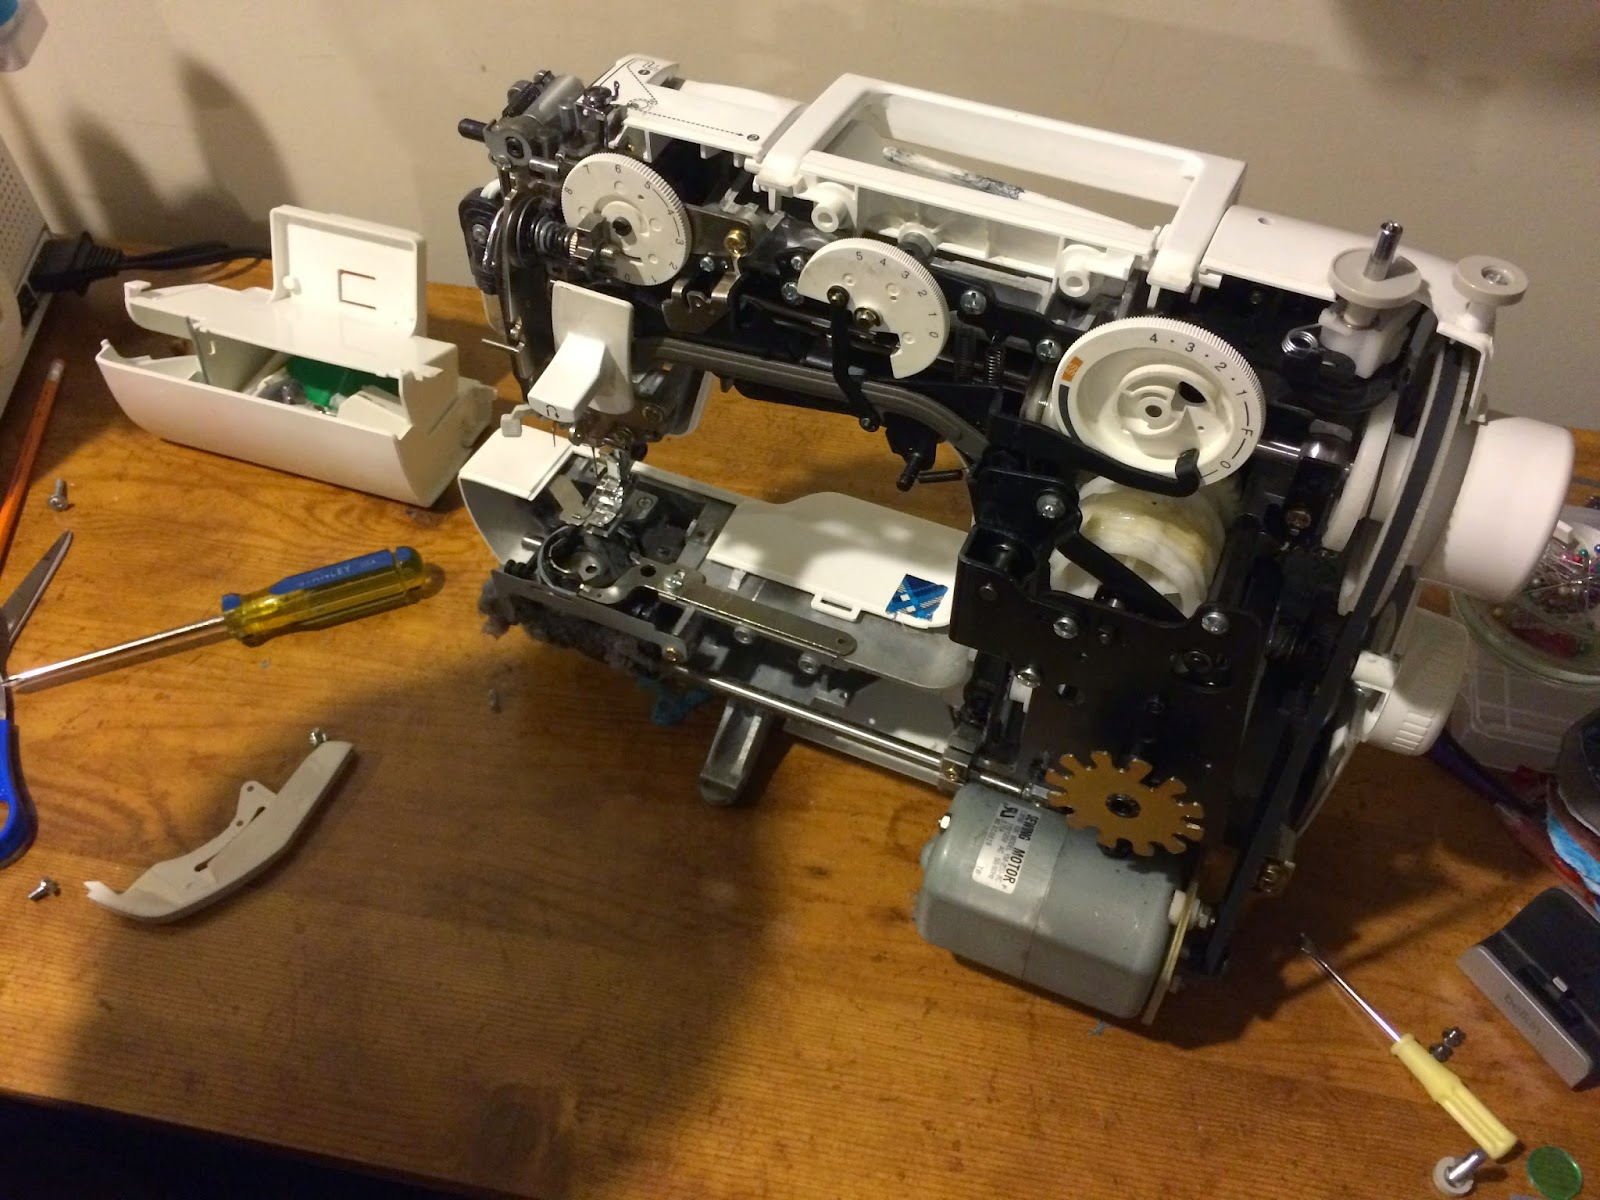 I was having some issues with my sewing machine so my husband took a video... check it out to see what your sewing machine looks like on the inside.